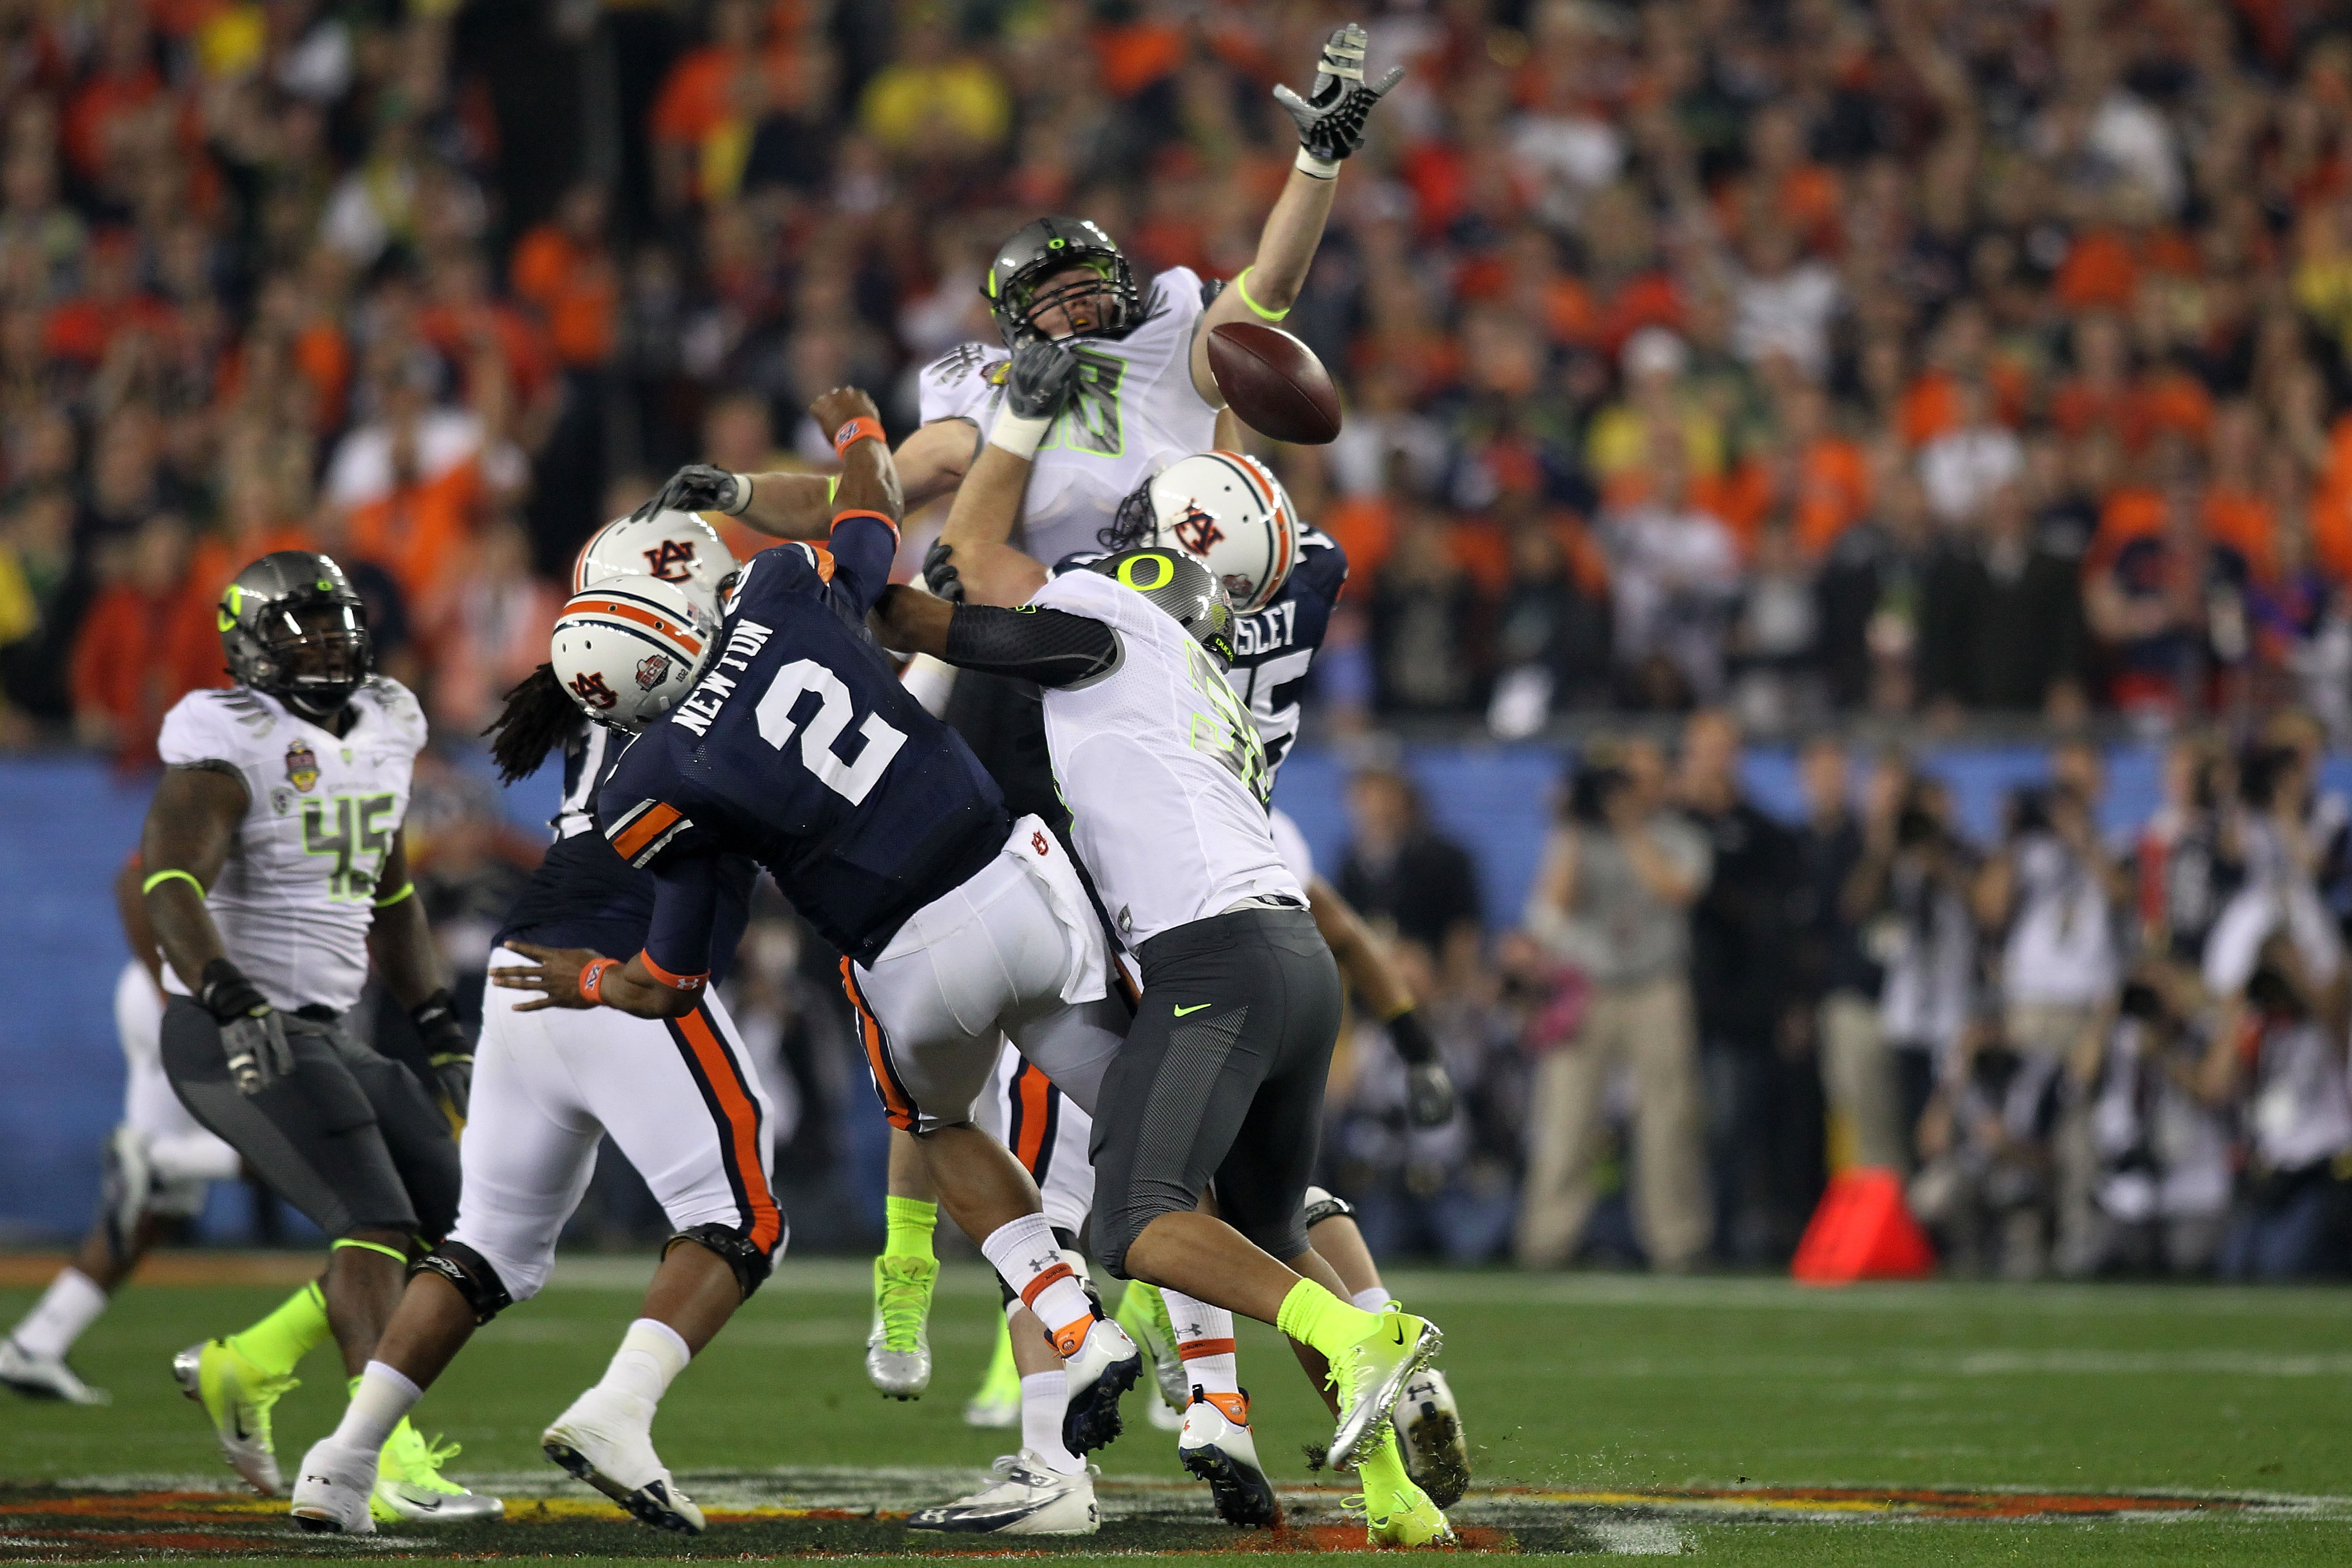 GLENDALE, AZ - JANUARY 10:  Cameron Newton #2 of the Auburn Tigers has a pass blocked by the Oregon Ducks during the Tostitos BCS National Championship Game at University of Phoenix Stadium on January 10, 2011 in Glendale, Arizona.  (Photo by Jonathan Fer